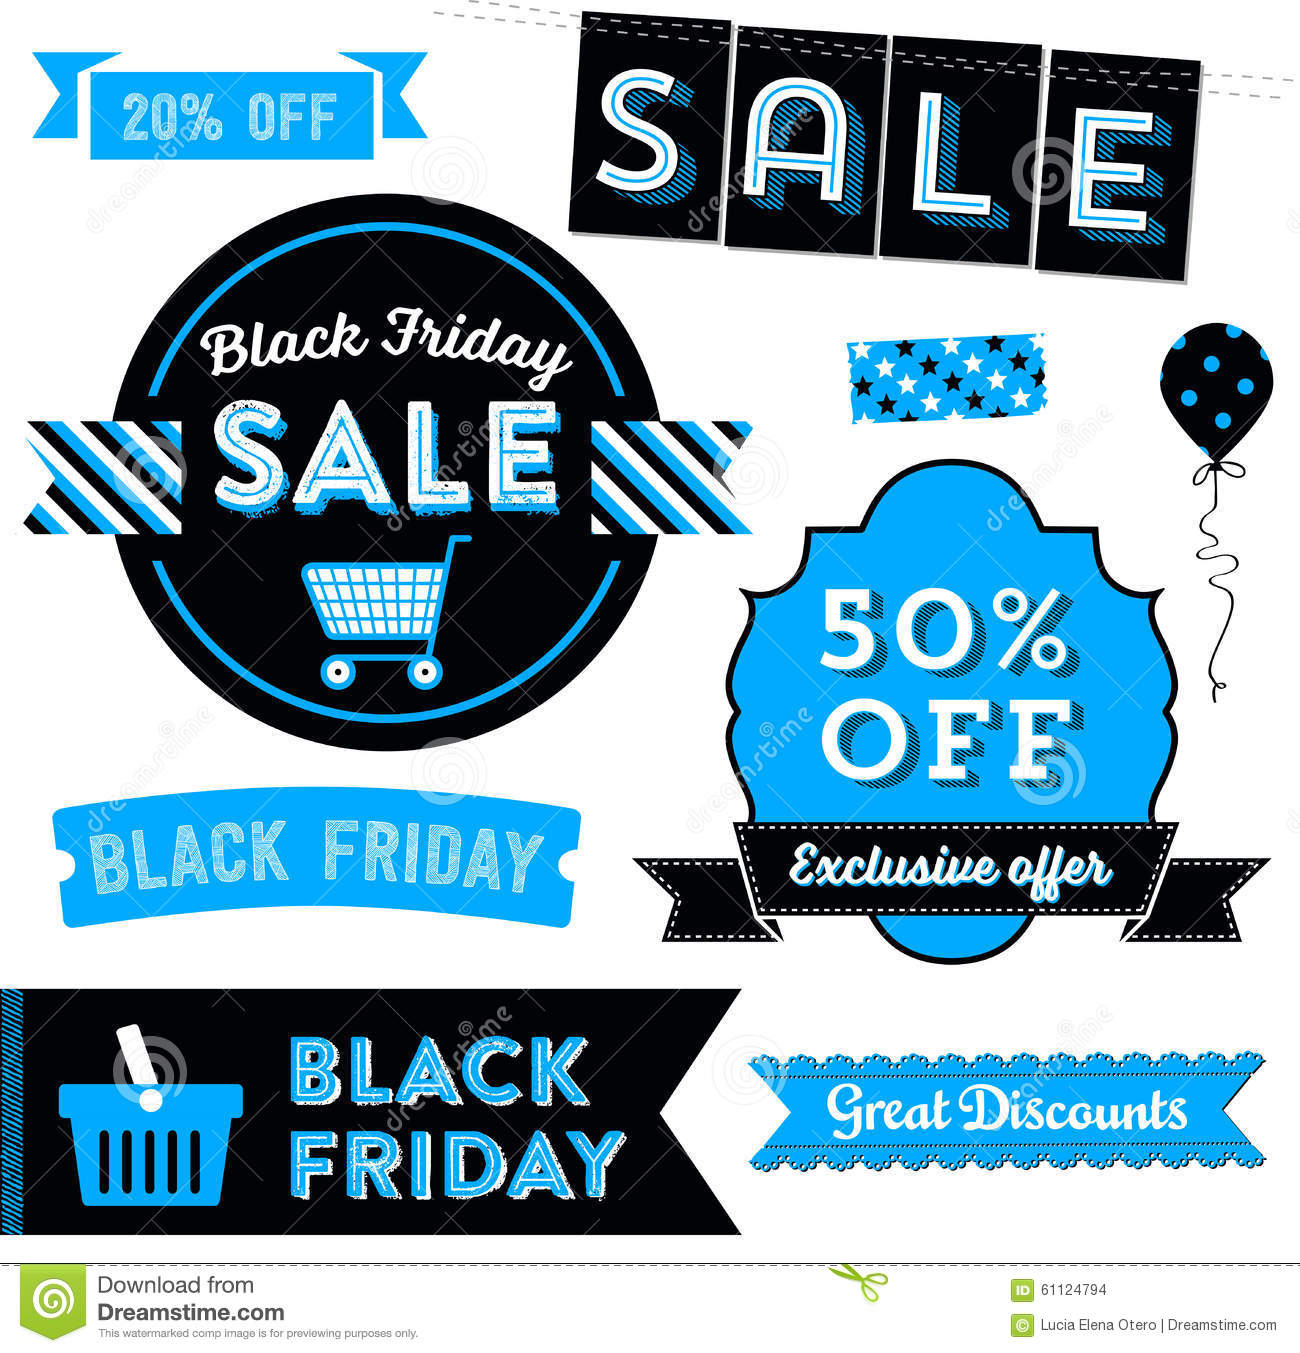 Black Friday Clipart stock vector. Illustration of advertisement.